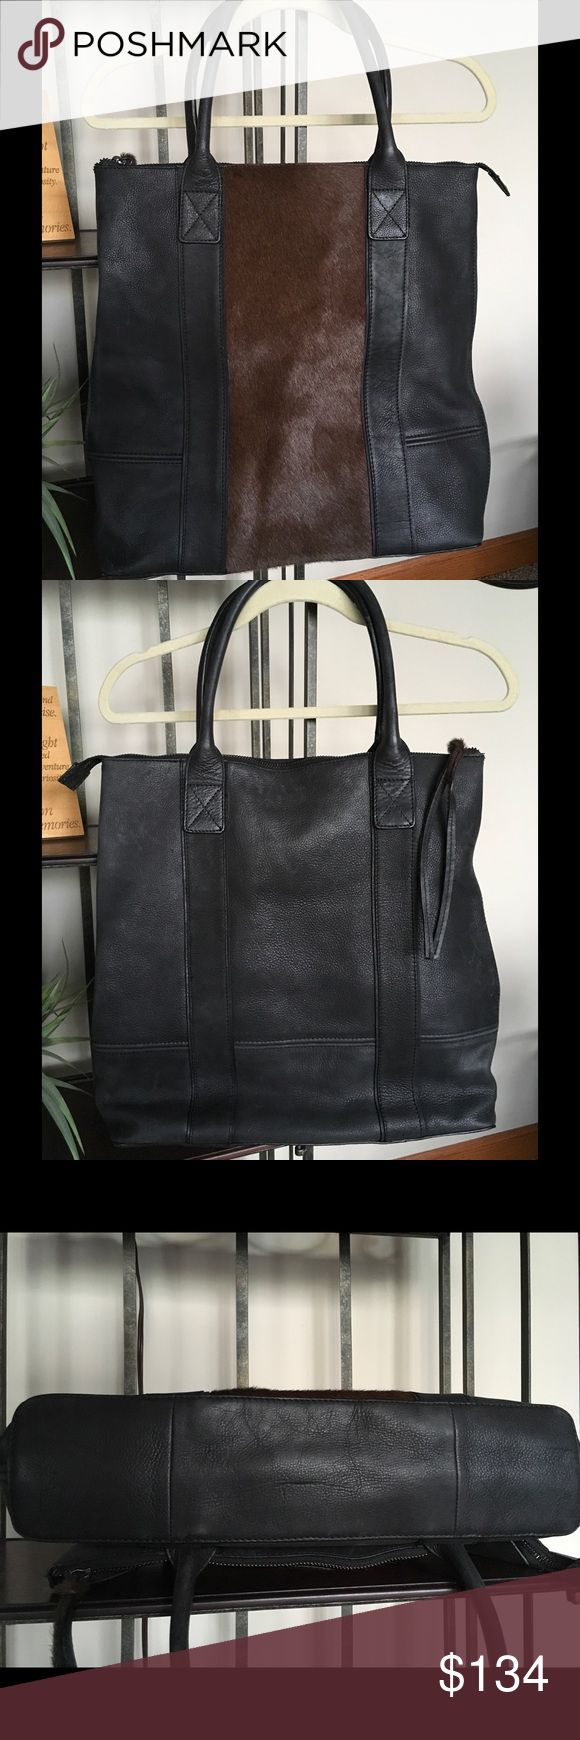 "🔆Beautiful ALLSAINTS Leather Polanski Tote Bag🔆 Beautiful ALLSAINTS Leather and Hair Polanski tote. Gently used. In excellent condition and shows very minimal wear. Color is black and brown. The lining is in perfect condition with no stains, rips, or tears (I pulled out to photograph - see pics). The Polanski Tote Bag is made using super soft leather with an Italian hair-on leather panel. Measures roughly 16"" tall, 16"" wide, handle height 8"". All Saints Bags Totes"